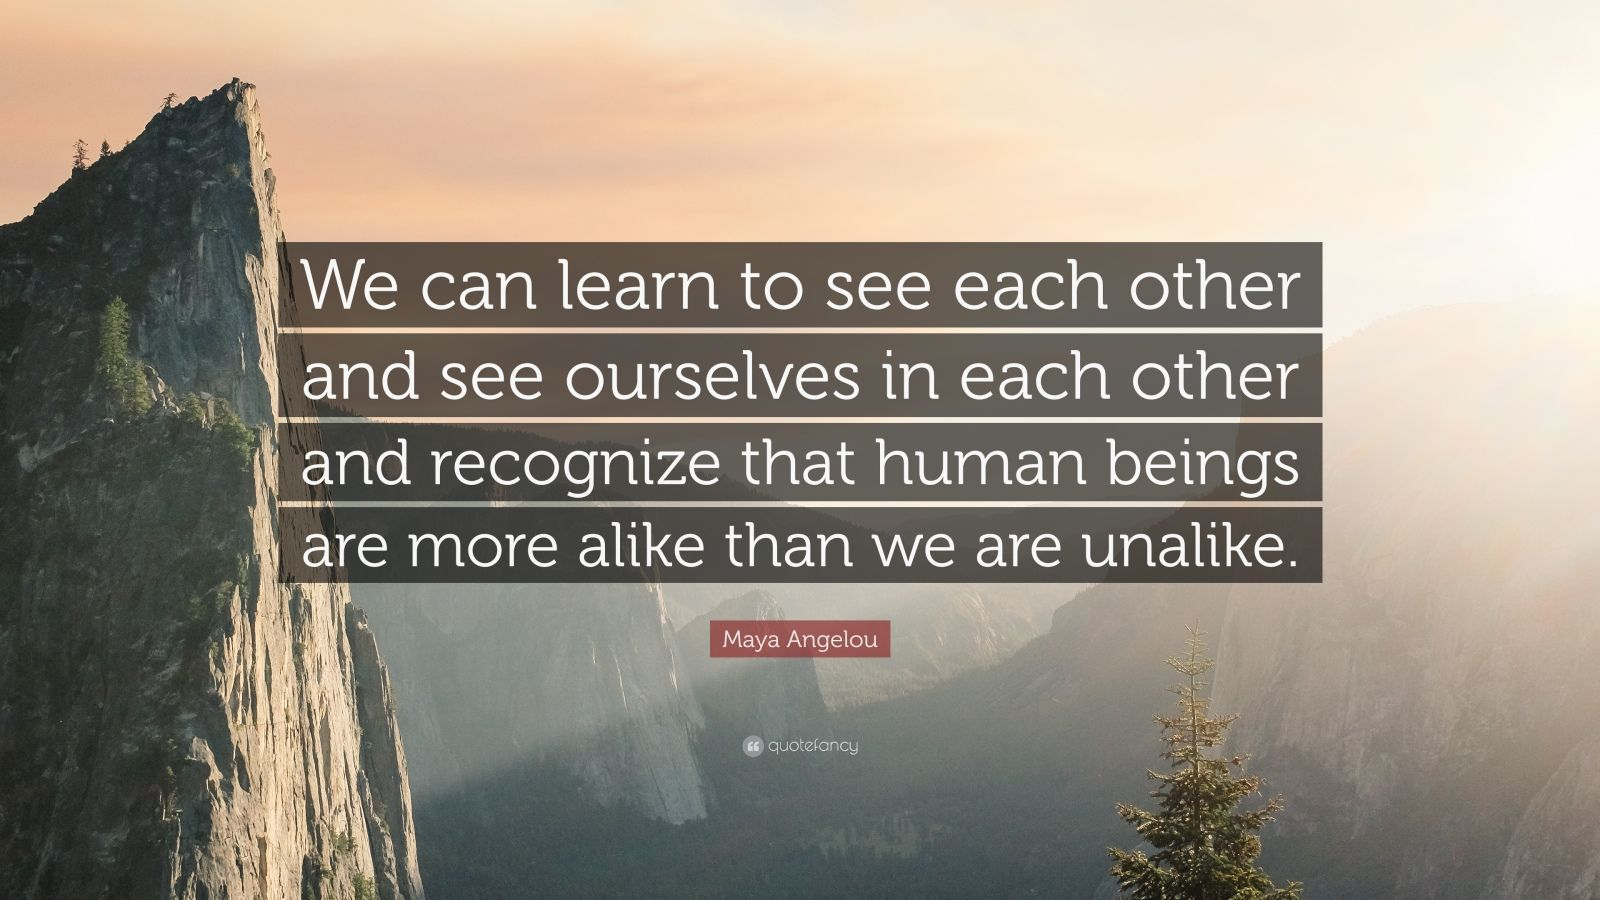 """Maya Angelou Quote: """"We can learn to see each other and see ourselves in each other and recognize that human beings are more alike than we are unalike."""""""